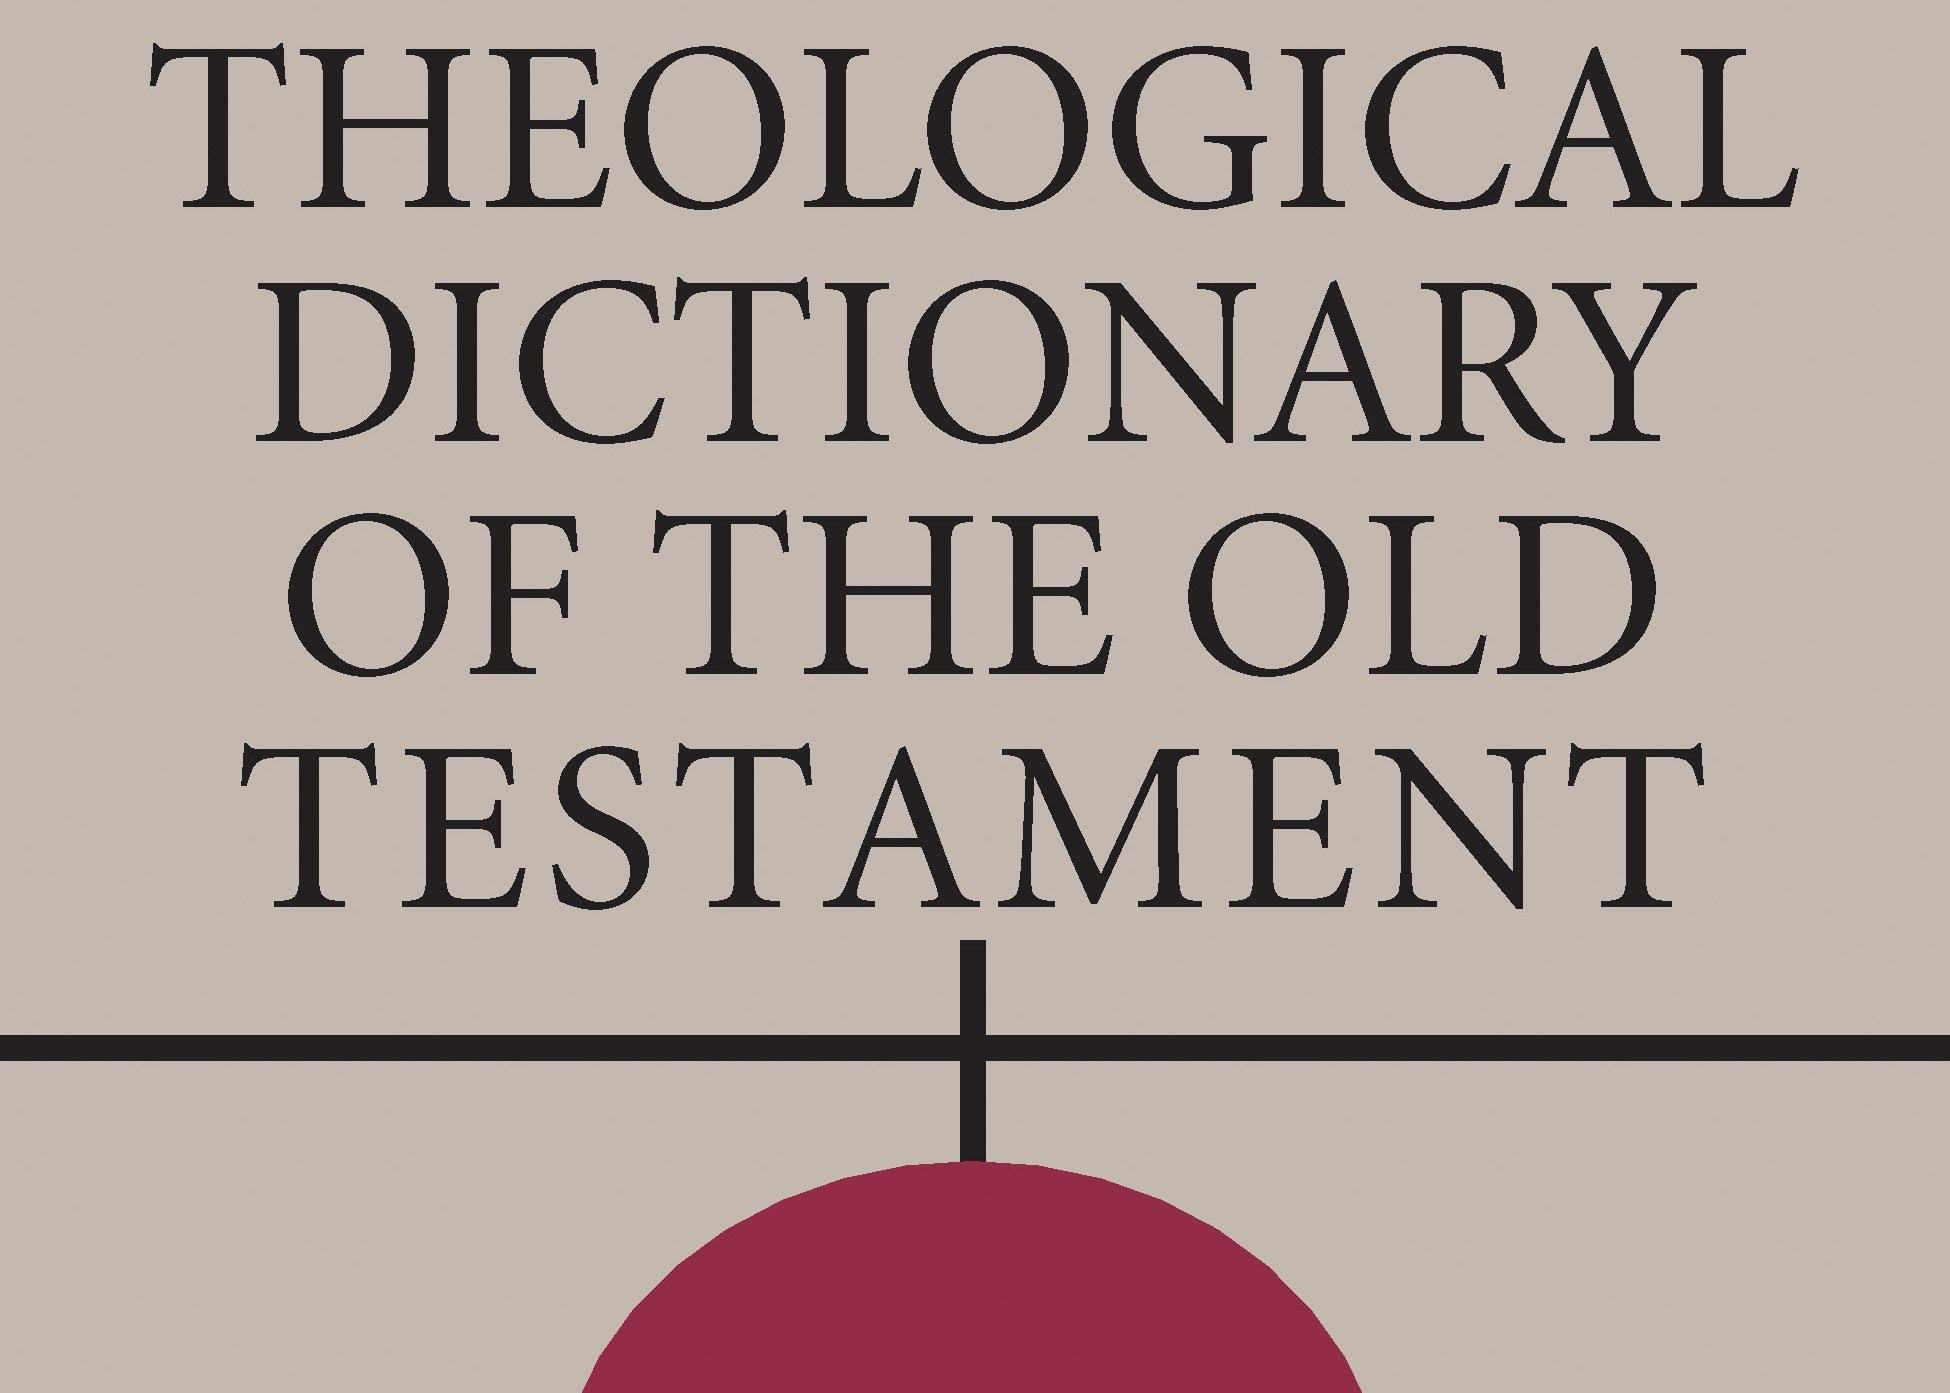 A Brief History of Theological Dictionary of the Old Testament (TDOT)